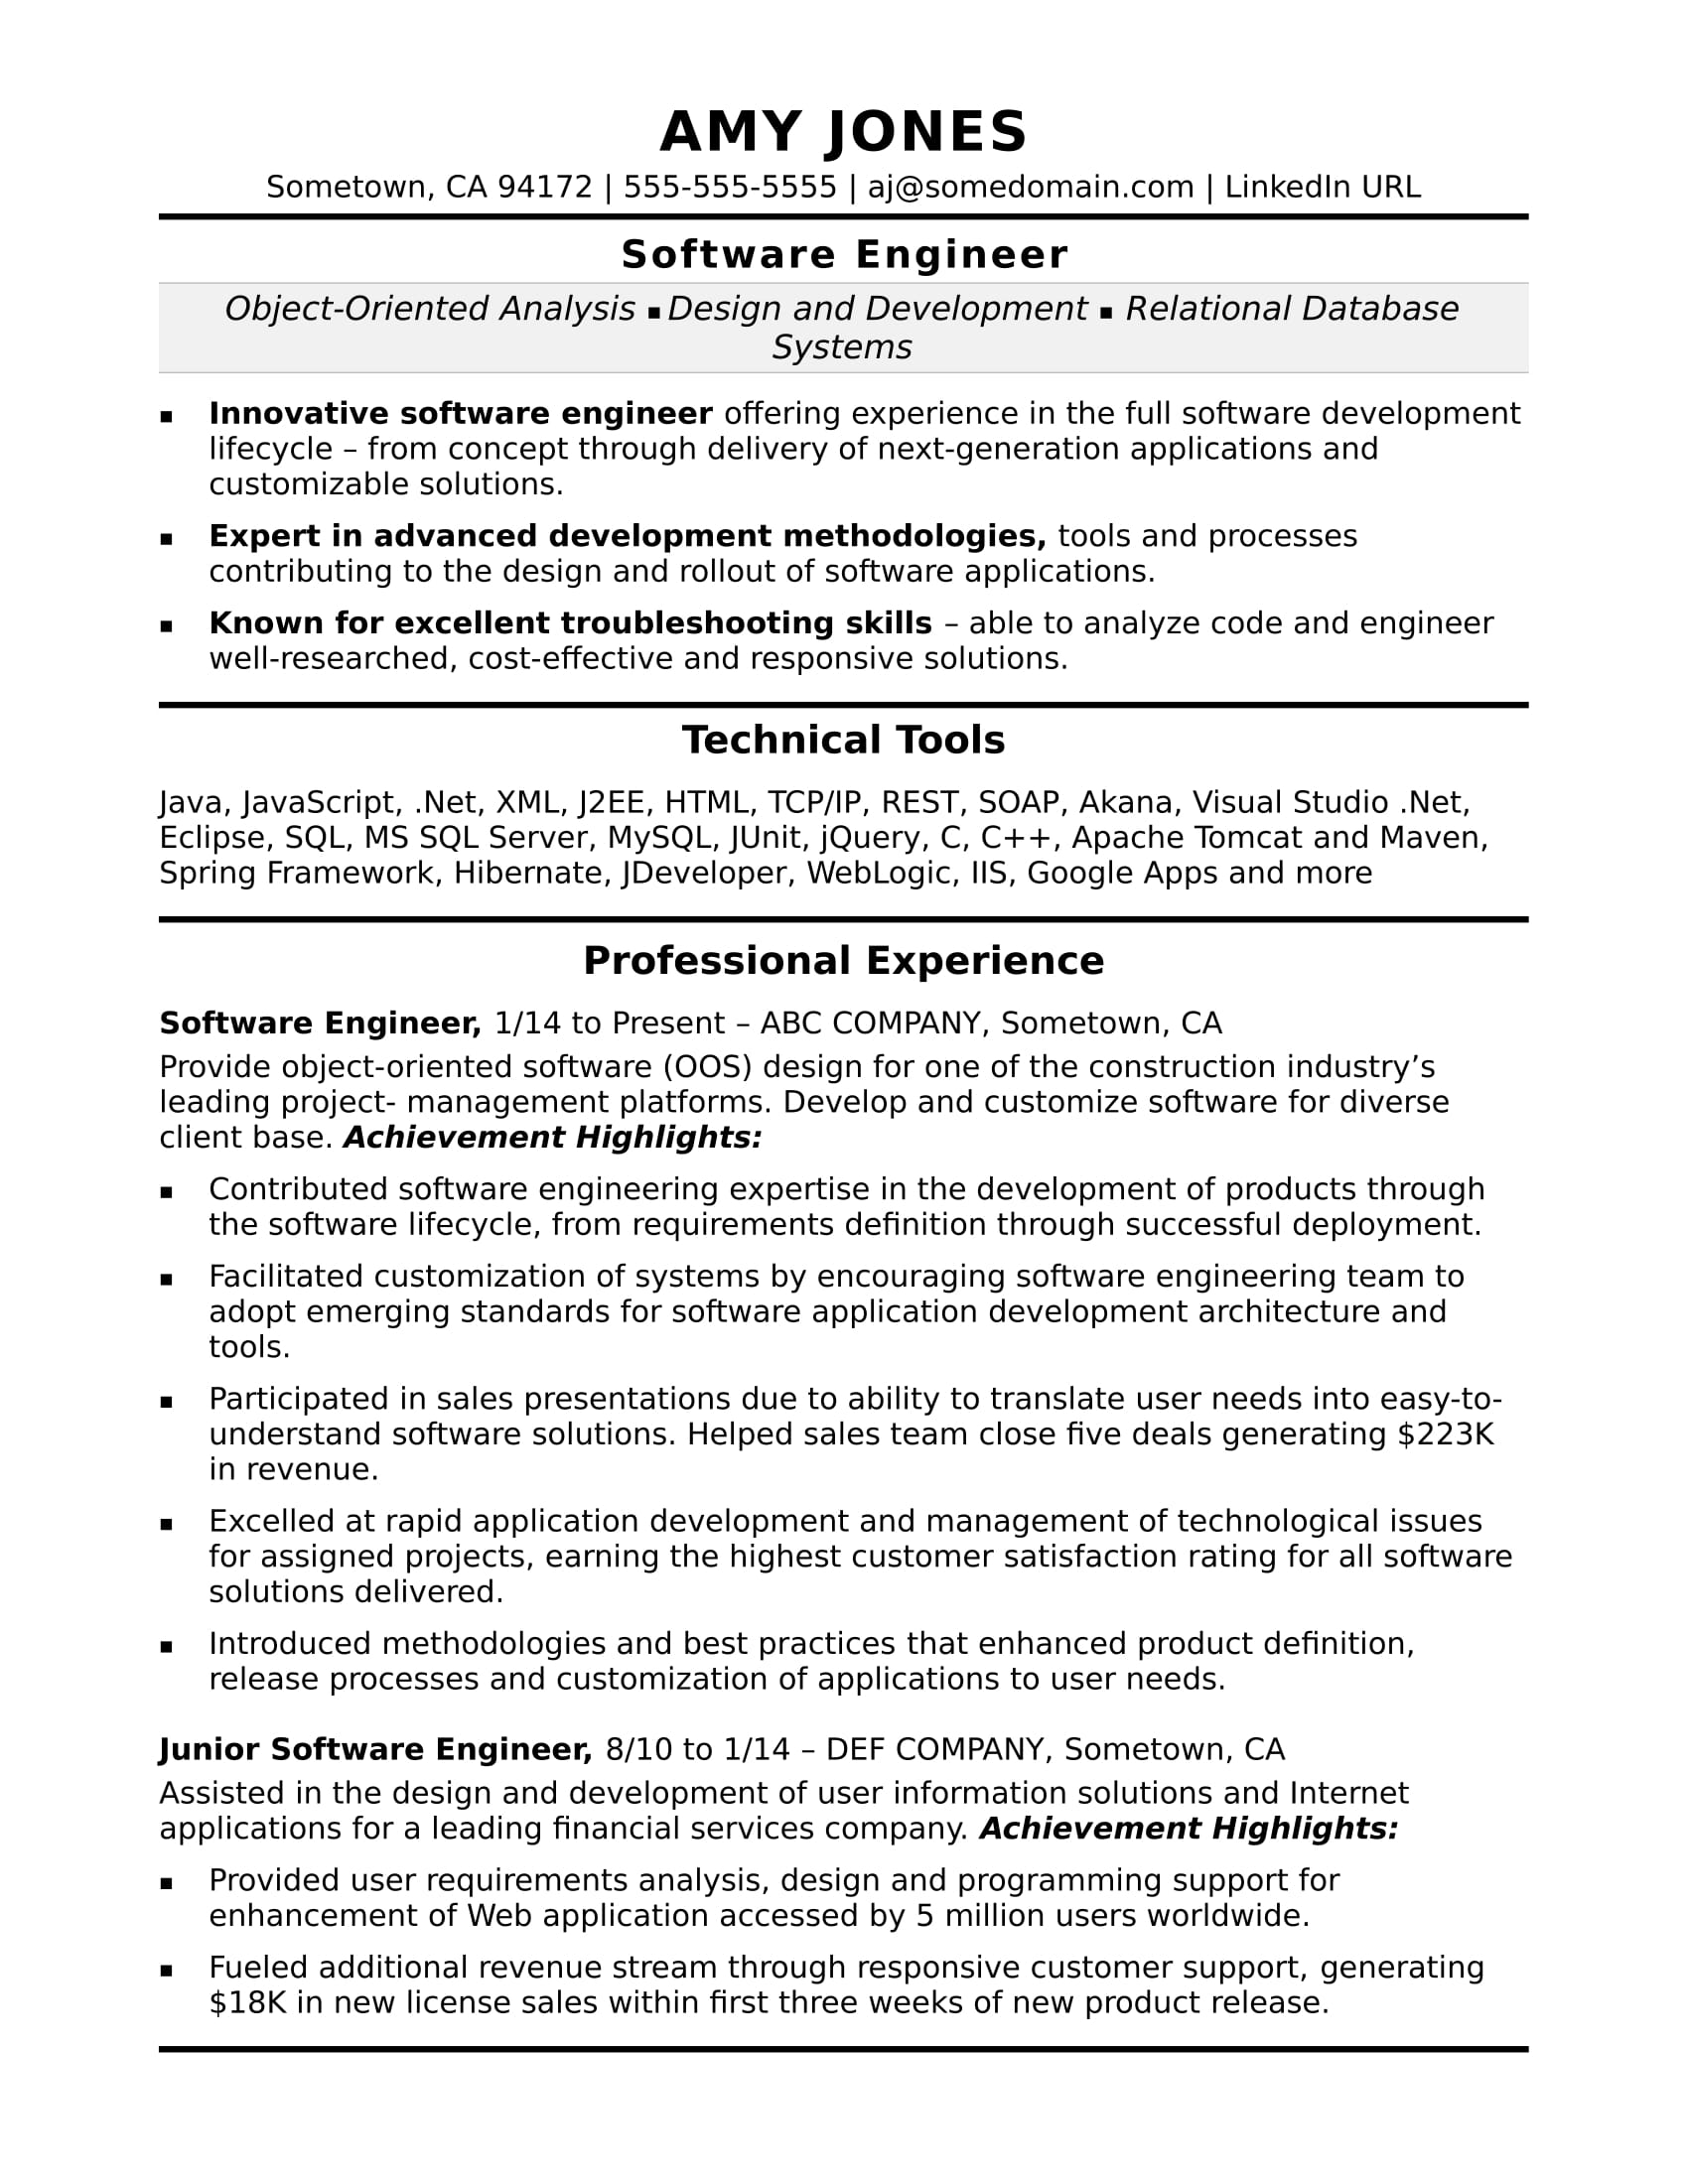 Sample Resume For A Midlevel Software Engineer  Skill Resume